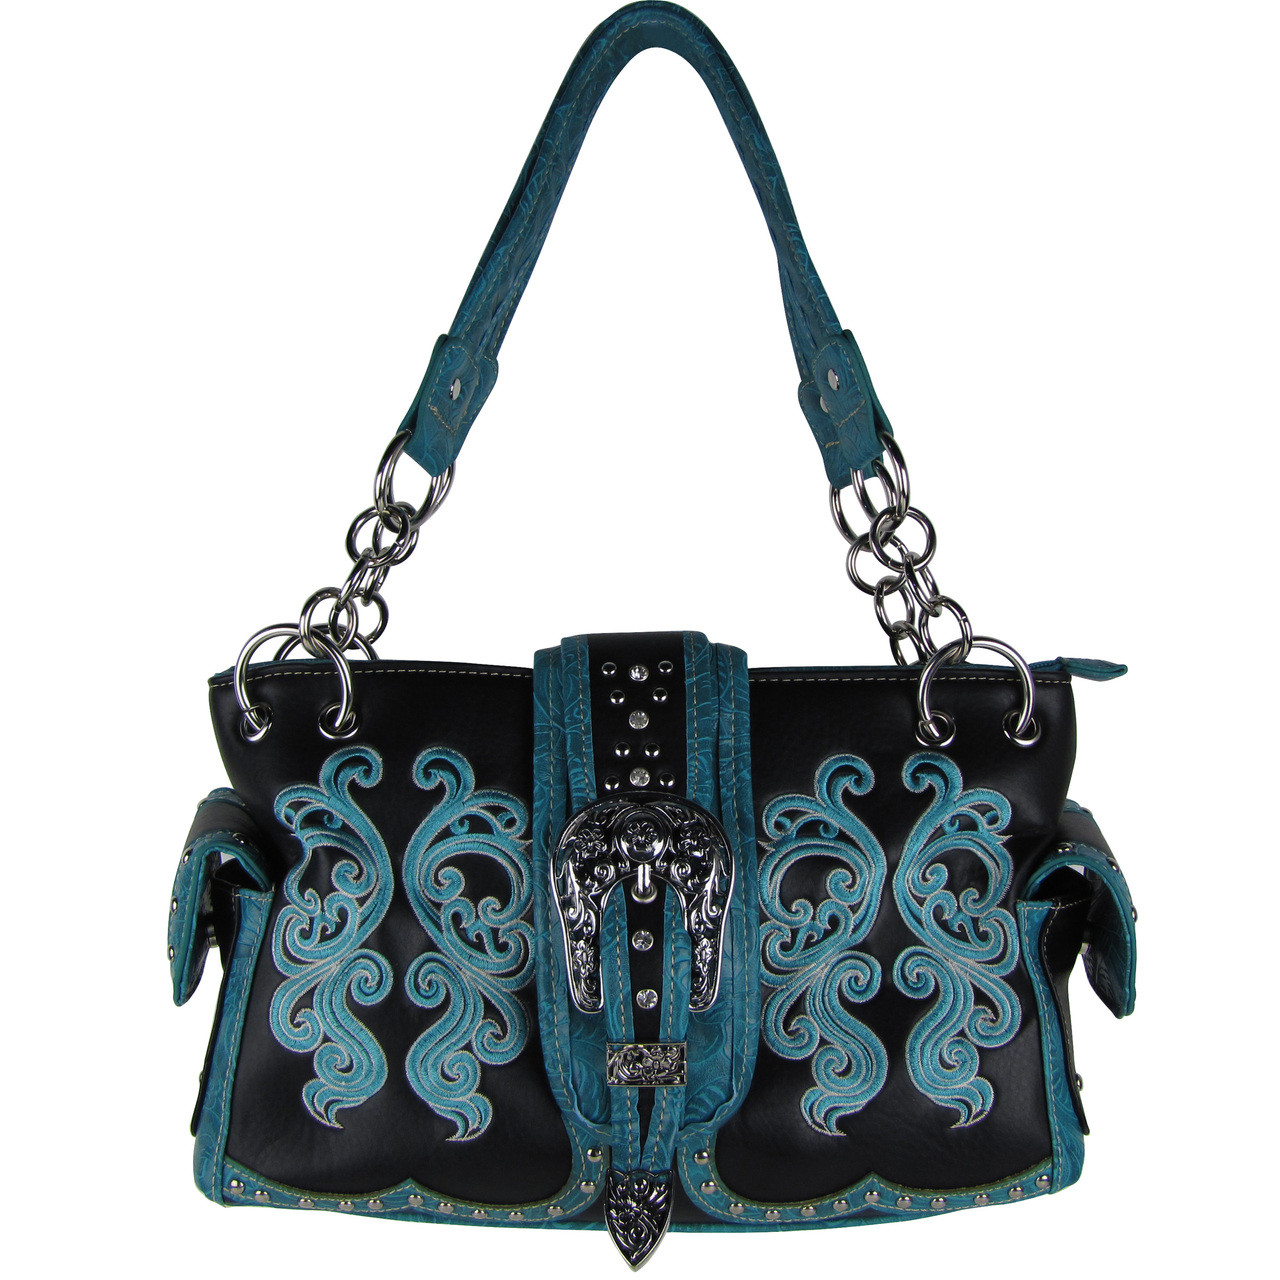 BLACK WESTERN BUCKLE LOOK SHOULDER HANDBAG HB1-39W62-1BLK